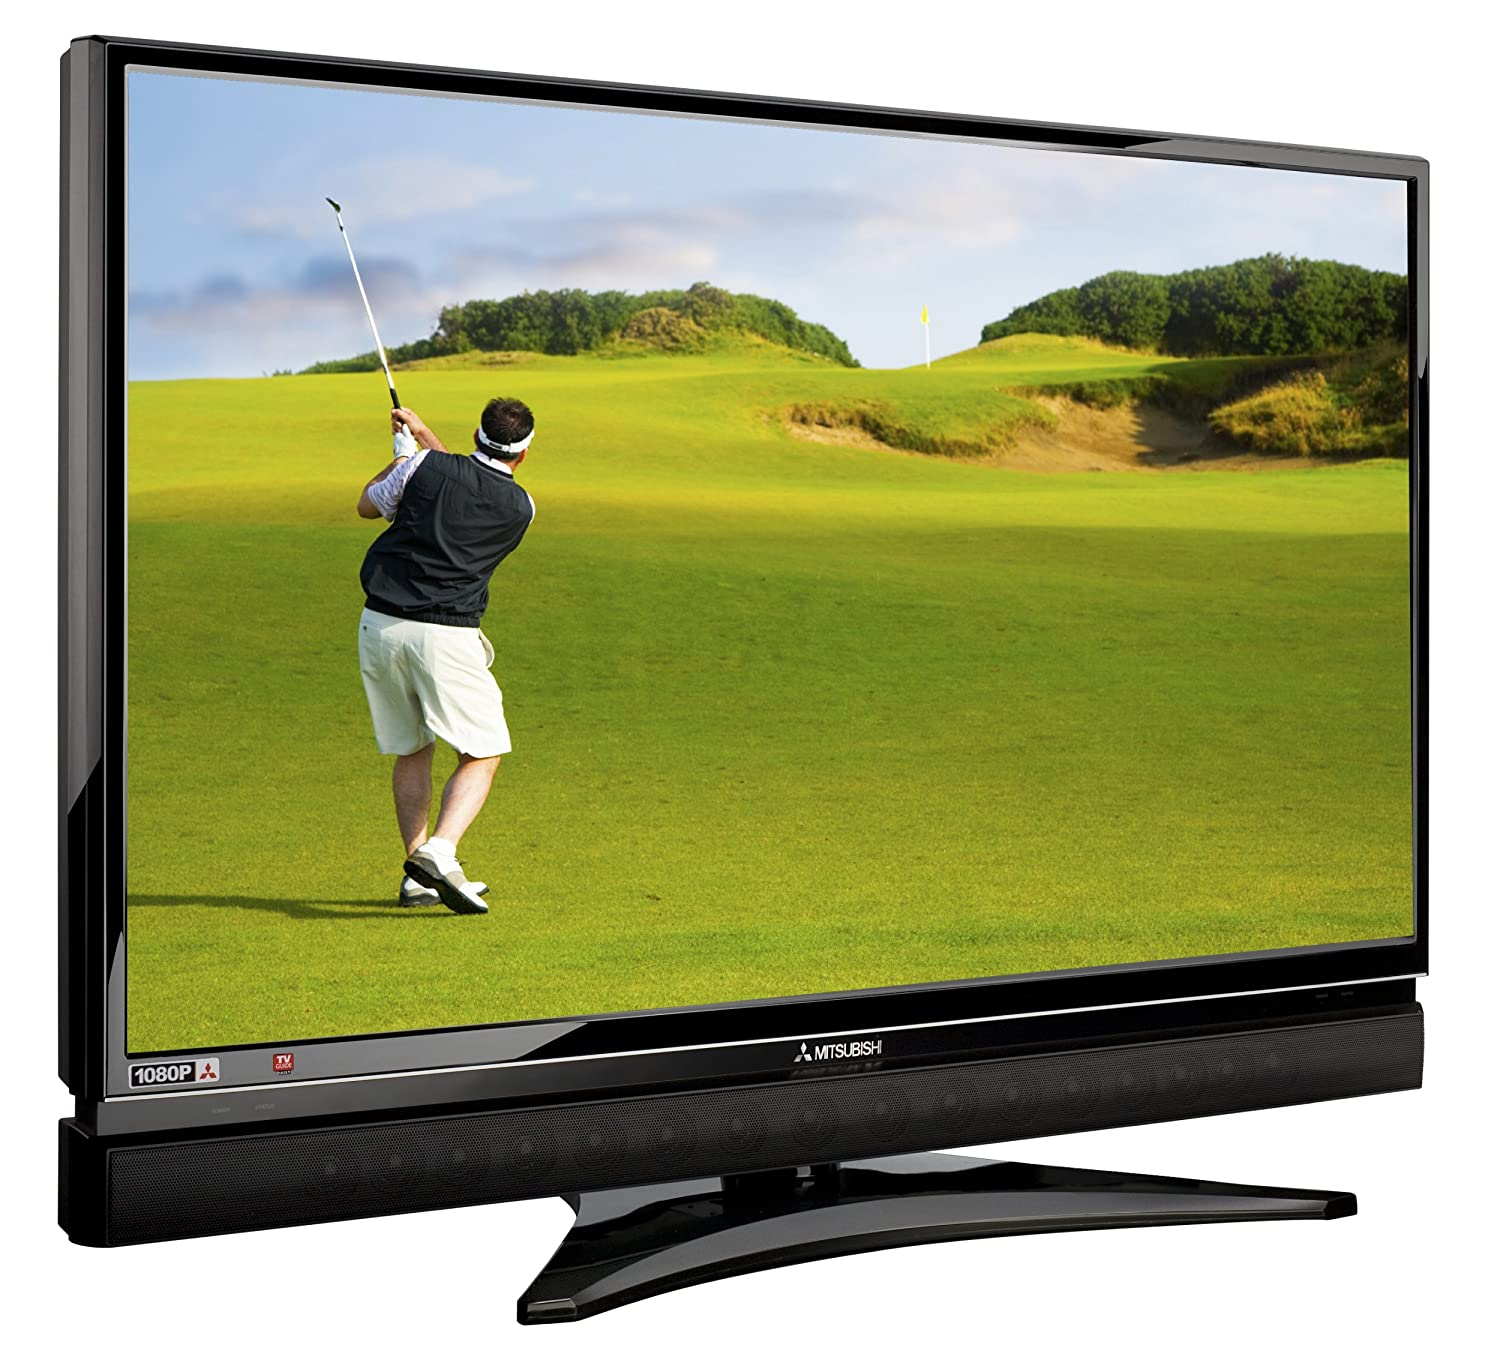 Amazon.com: Mitsubishi LT-46149 46-Inch 1080p 120Hz LCD HDTV with  Integrated Sound Projector: Electronics